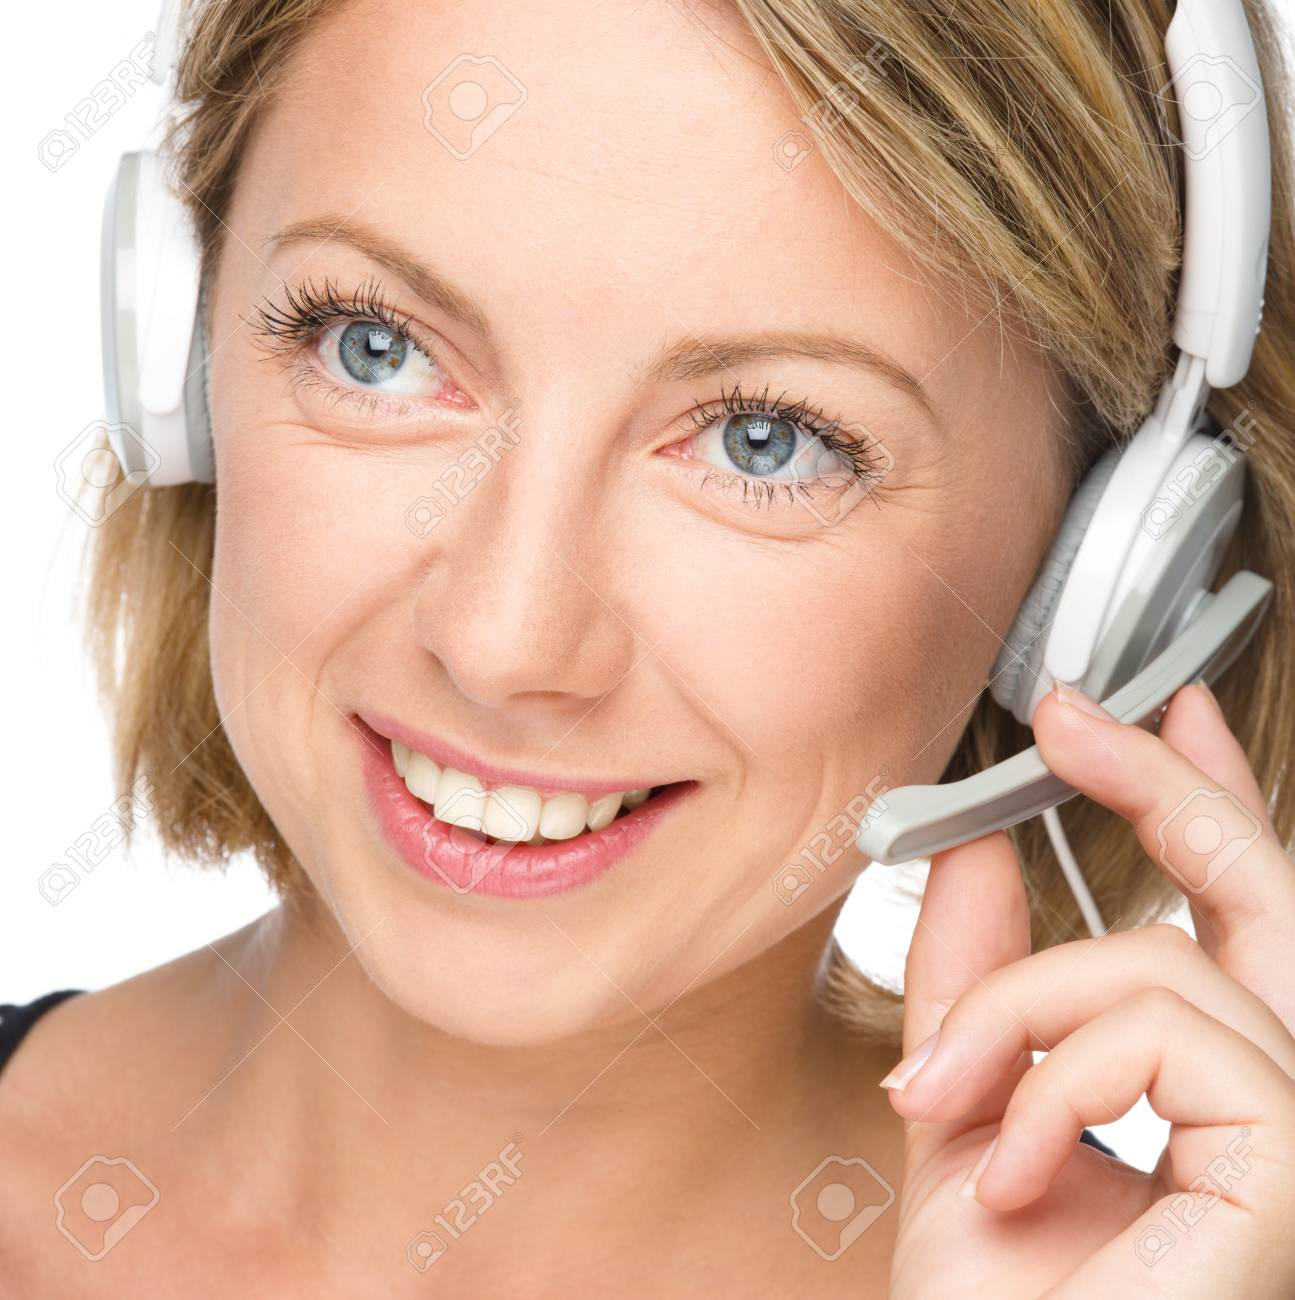 Closeup portrait of lovely young woman talking to customers as a consultant using headset, isolated over white Stock Photo - 22483650